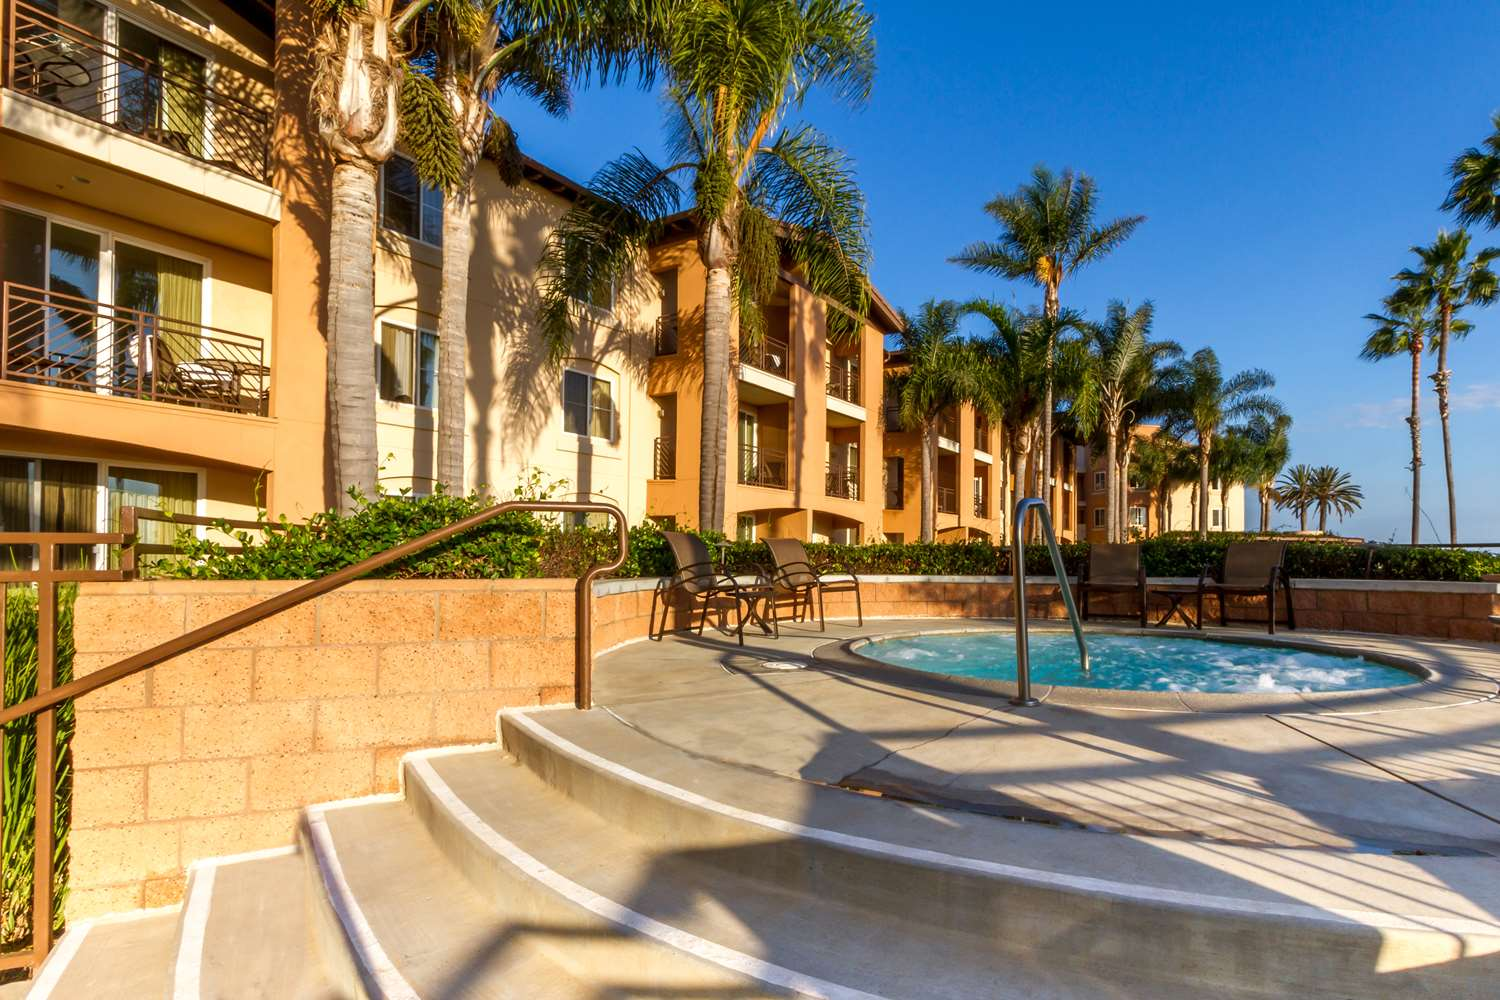 Grand Pacific Palisades Hotel & Resort Carlsbad, CA - See Discounts